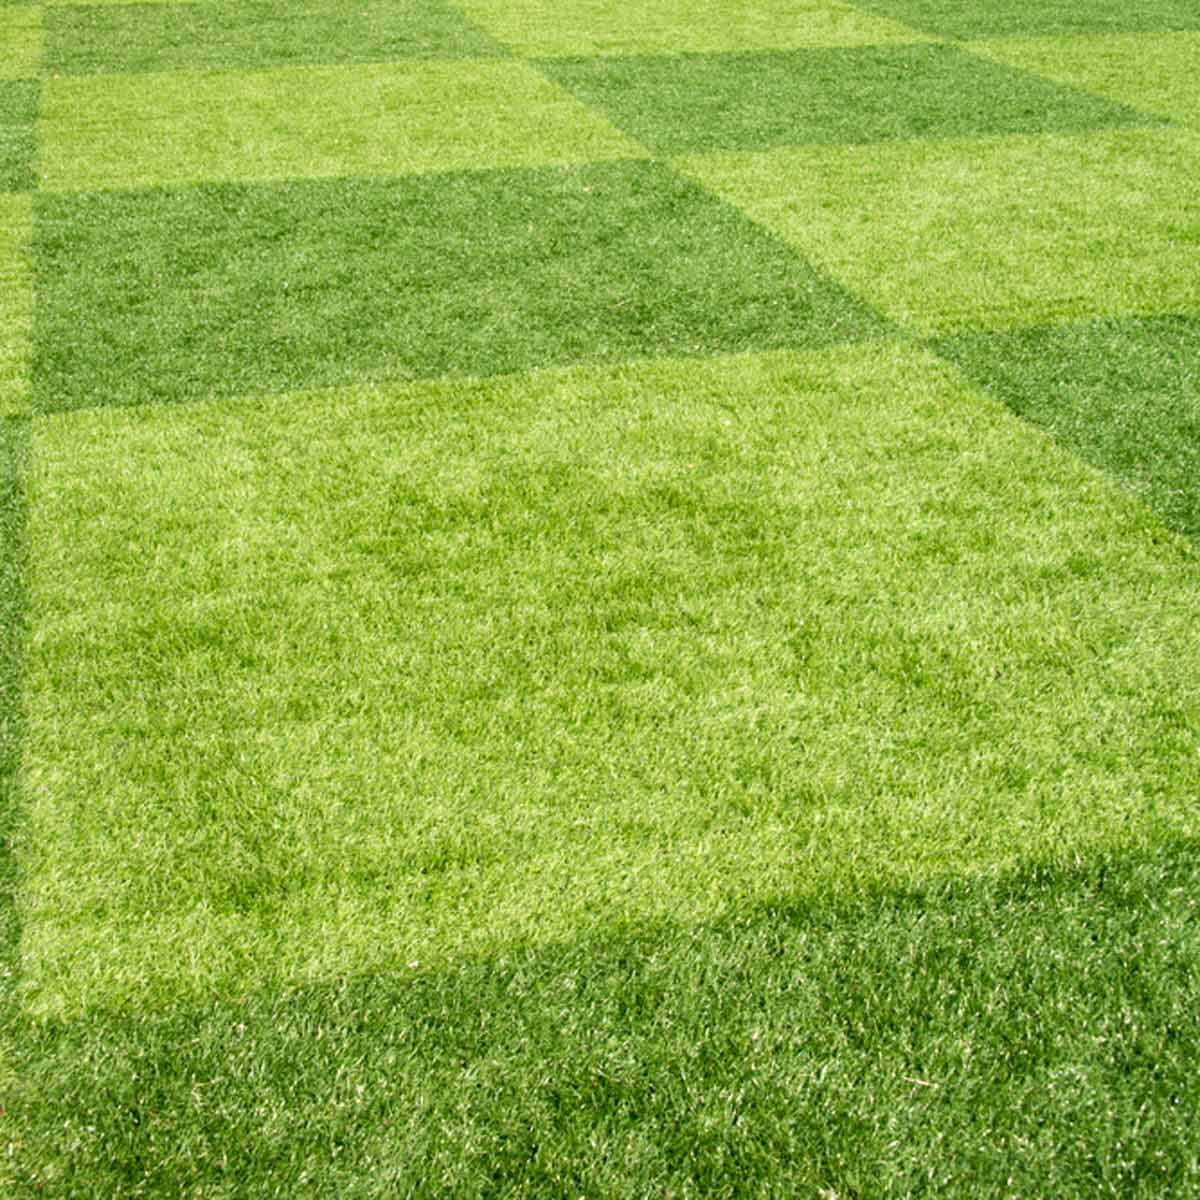 8 Awesome Lawn Mowing Designs Family Handyman